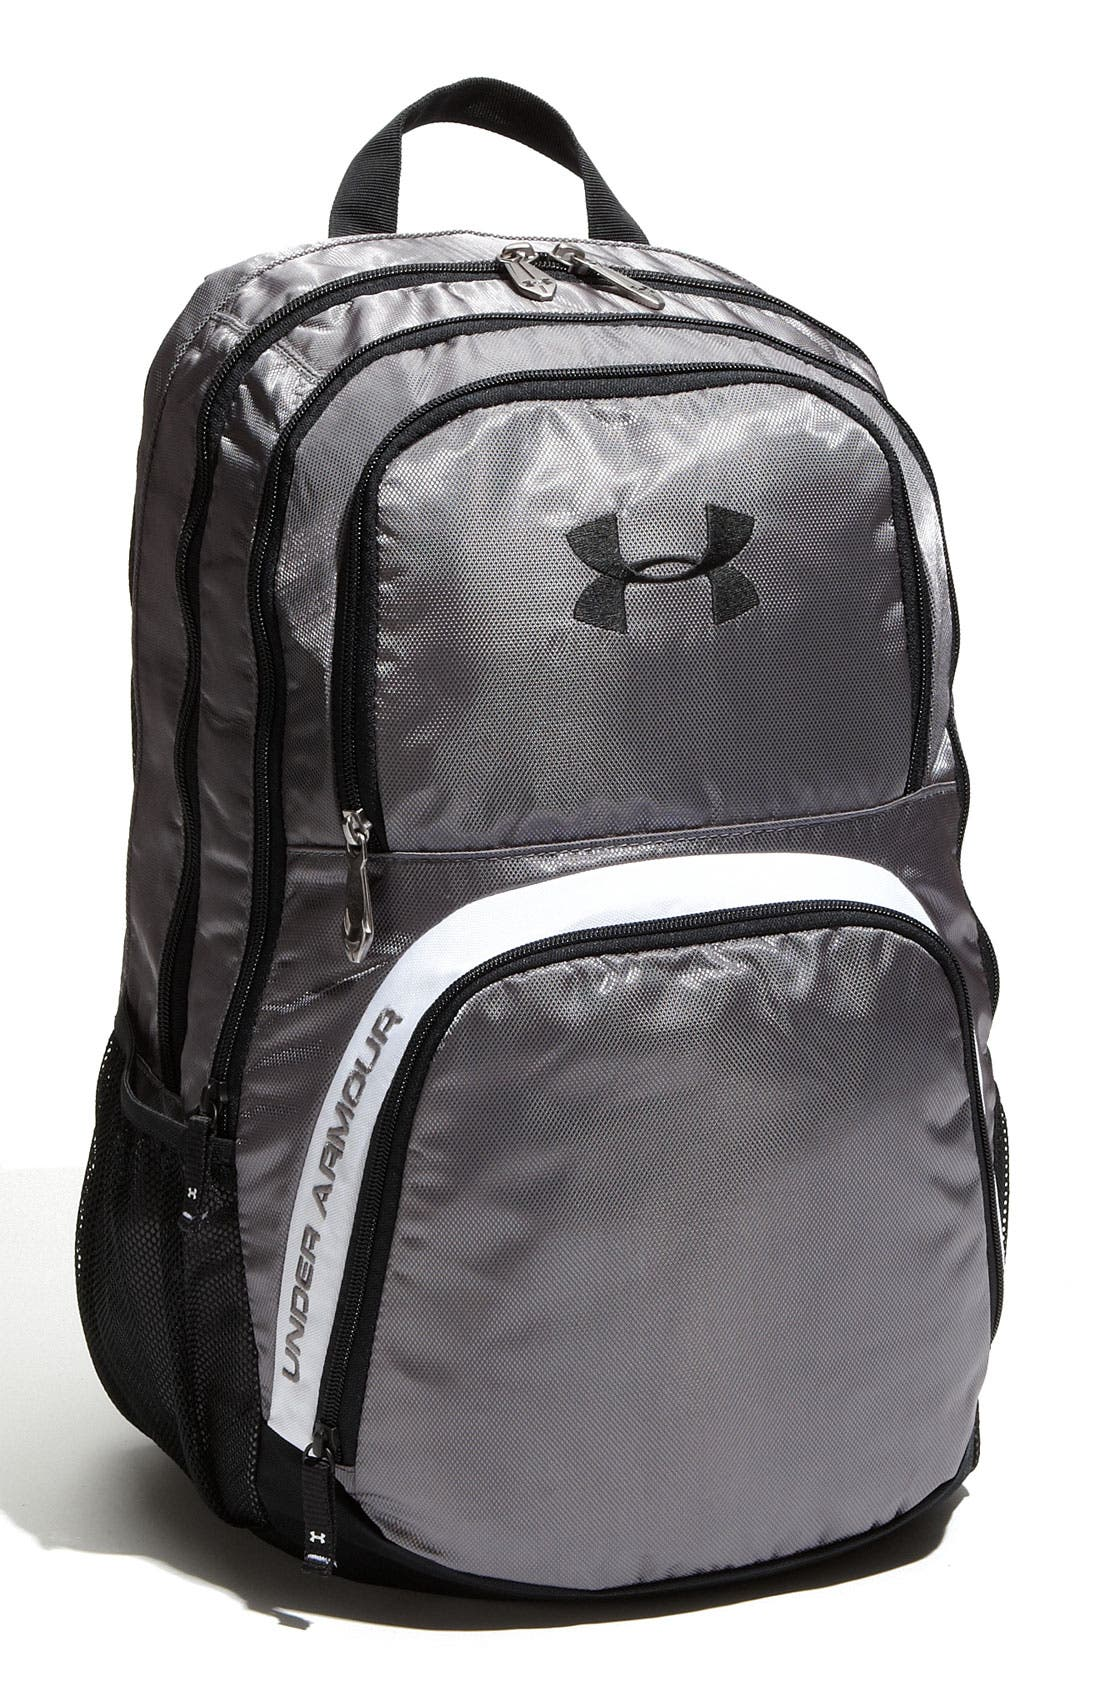 Main Image - Under Armour 'Victory' Backpack